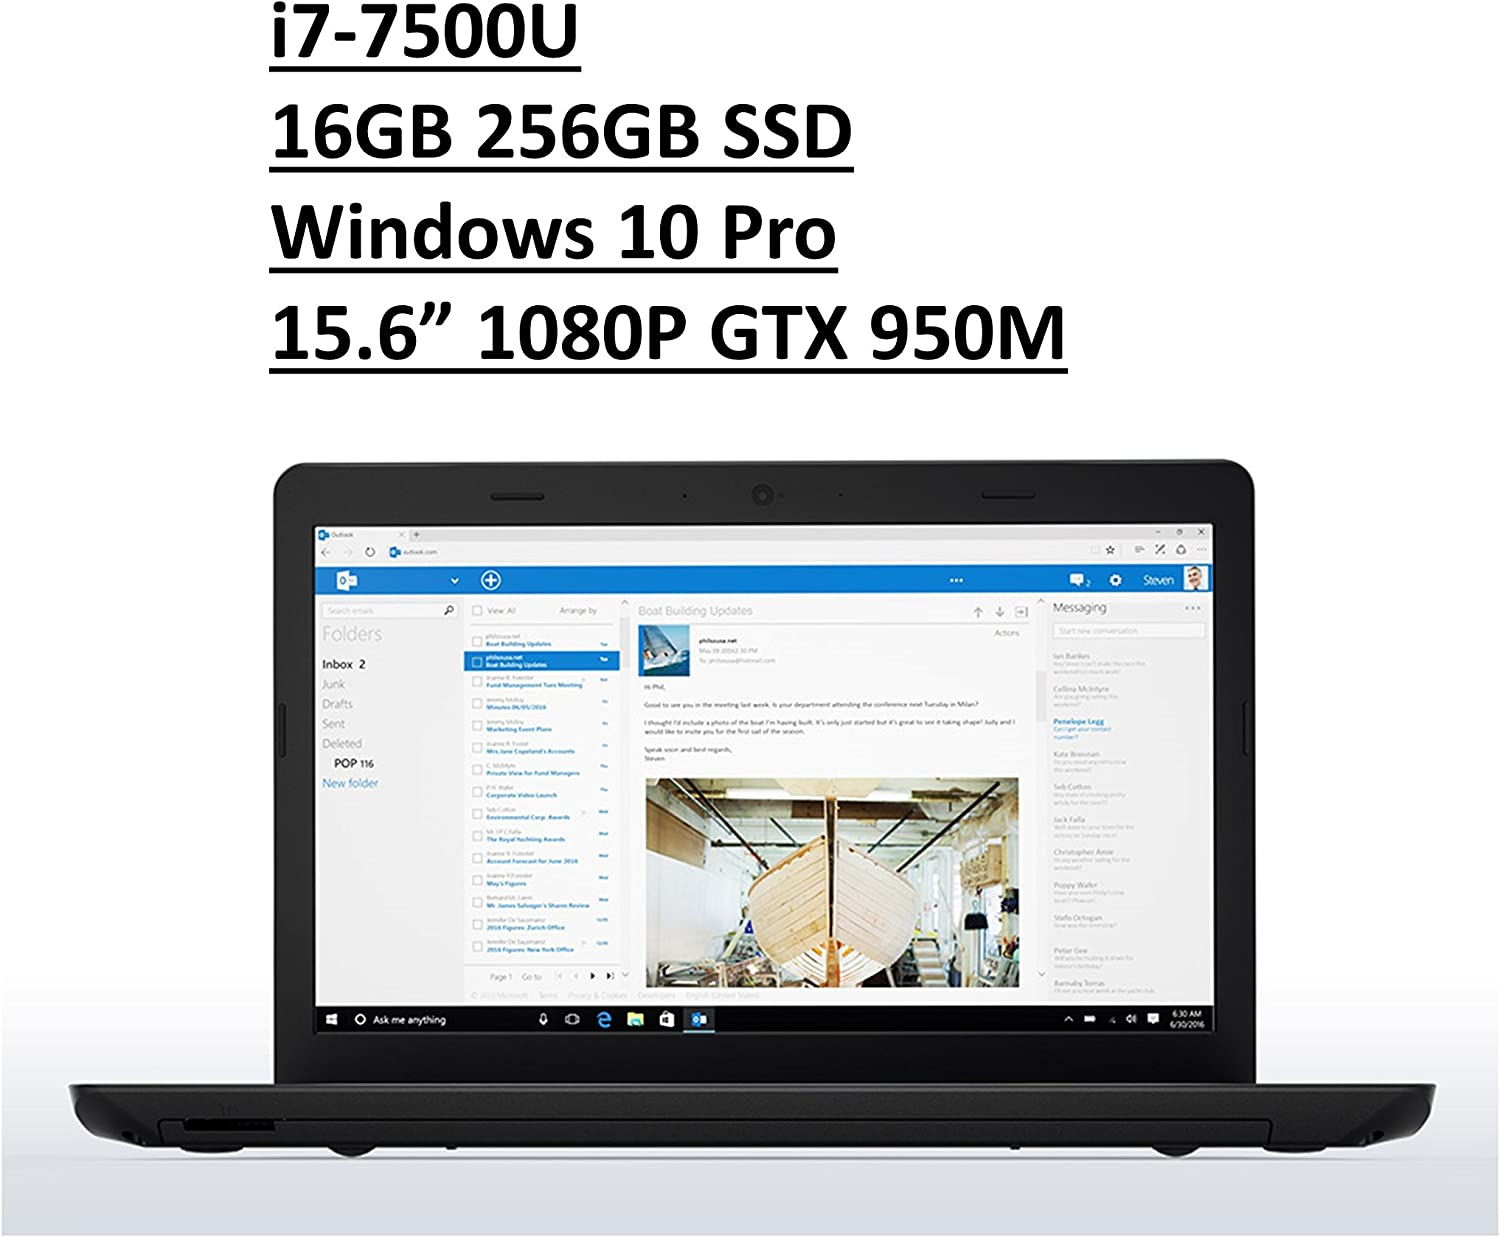 "2017 Lenovo ThinkPad E570 15.6"" Business Laptop: Full HD (1920x1080) IPS Anti-Glare, Intel Core i7-7500U, 256GB SSD, 16GB DDR4, NVIDIA GTX 950, FingerPrint, DVD+RW, Windows 10 Pro"